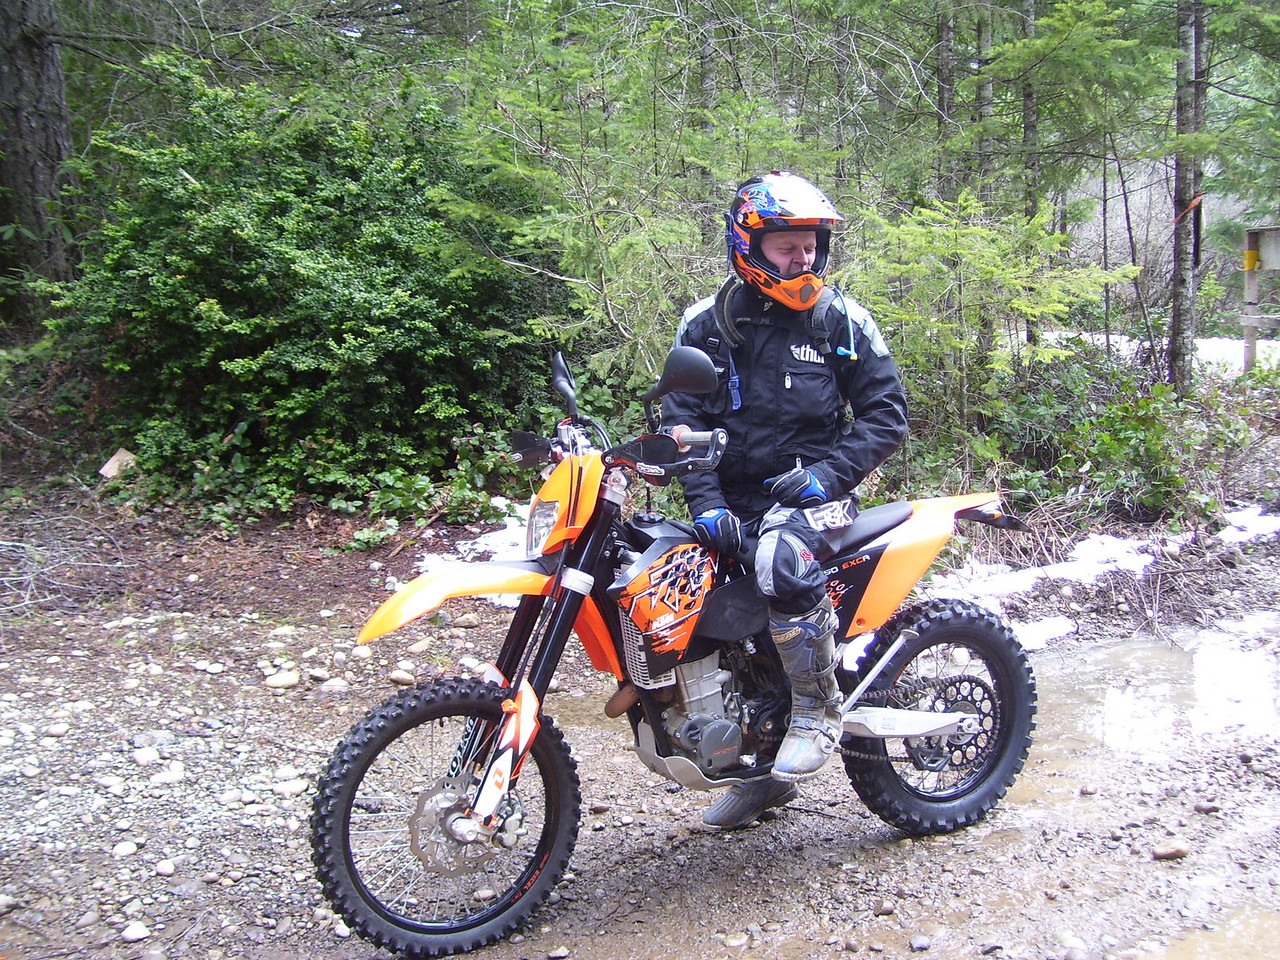 Rollie came all the way from Vancover, WA. Nice KTM 450 EXC. Now that's a Dual Sport..!!